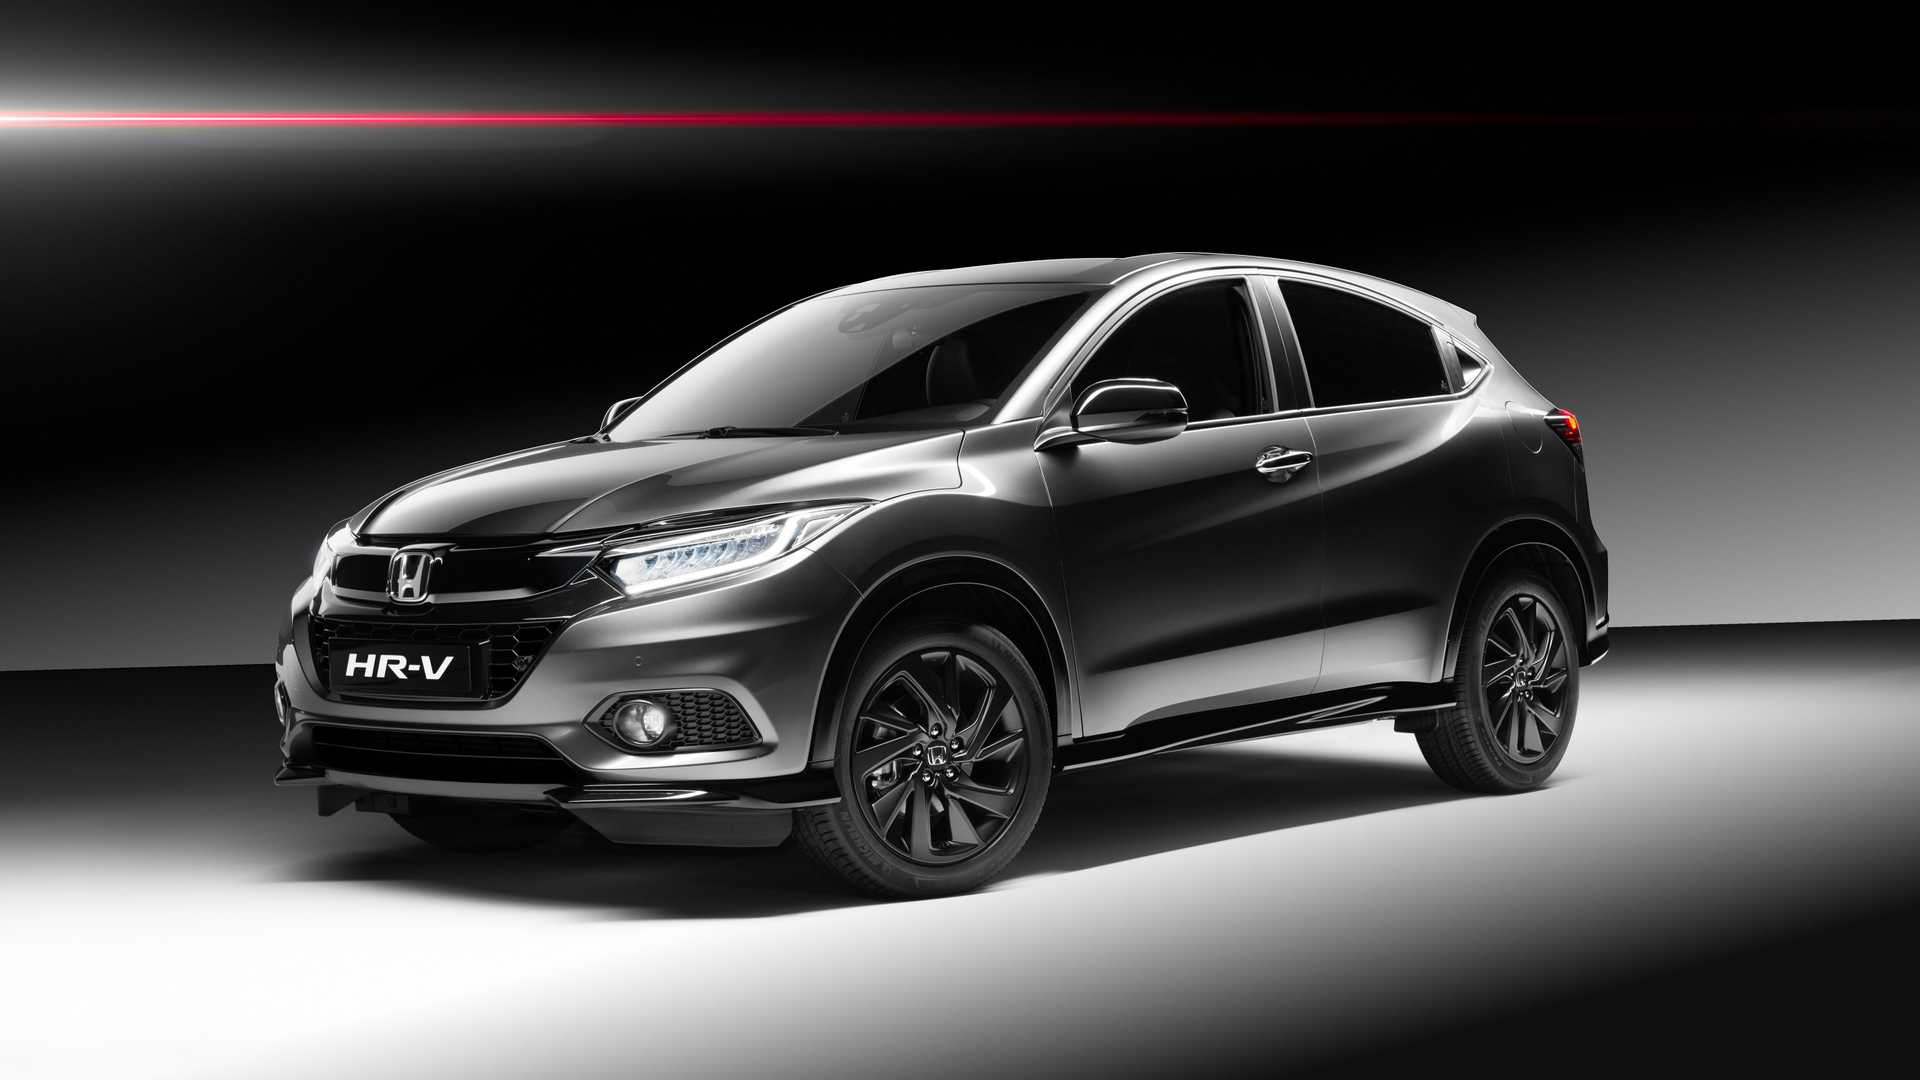 20 The Best 2019 Honda Vezel Research New